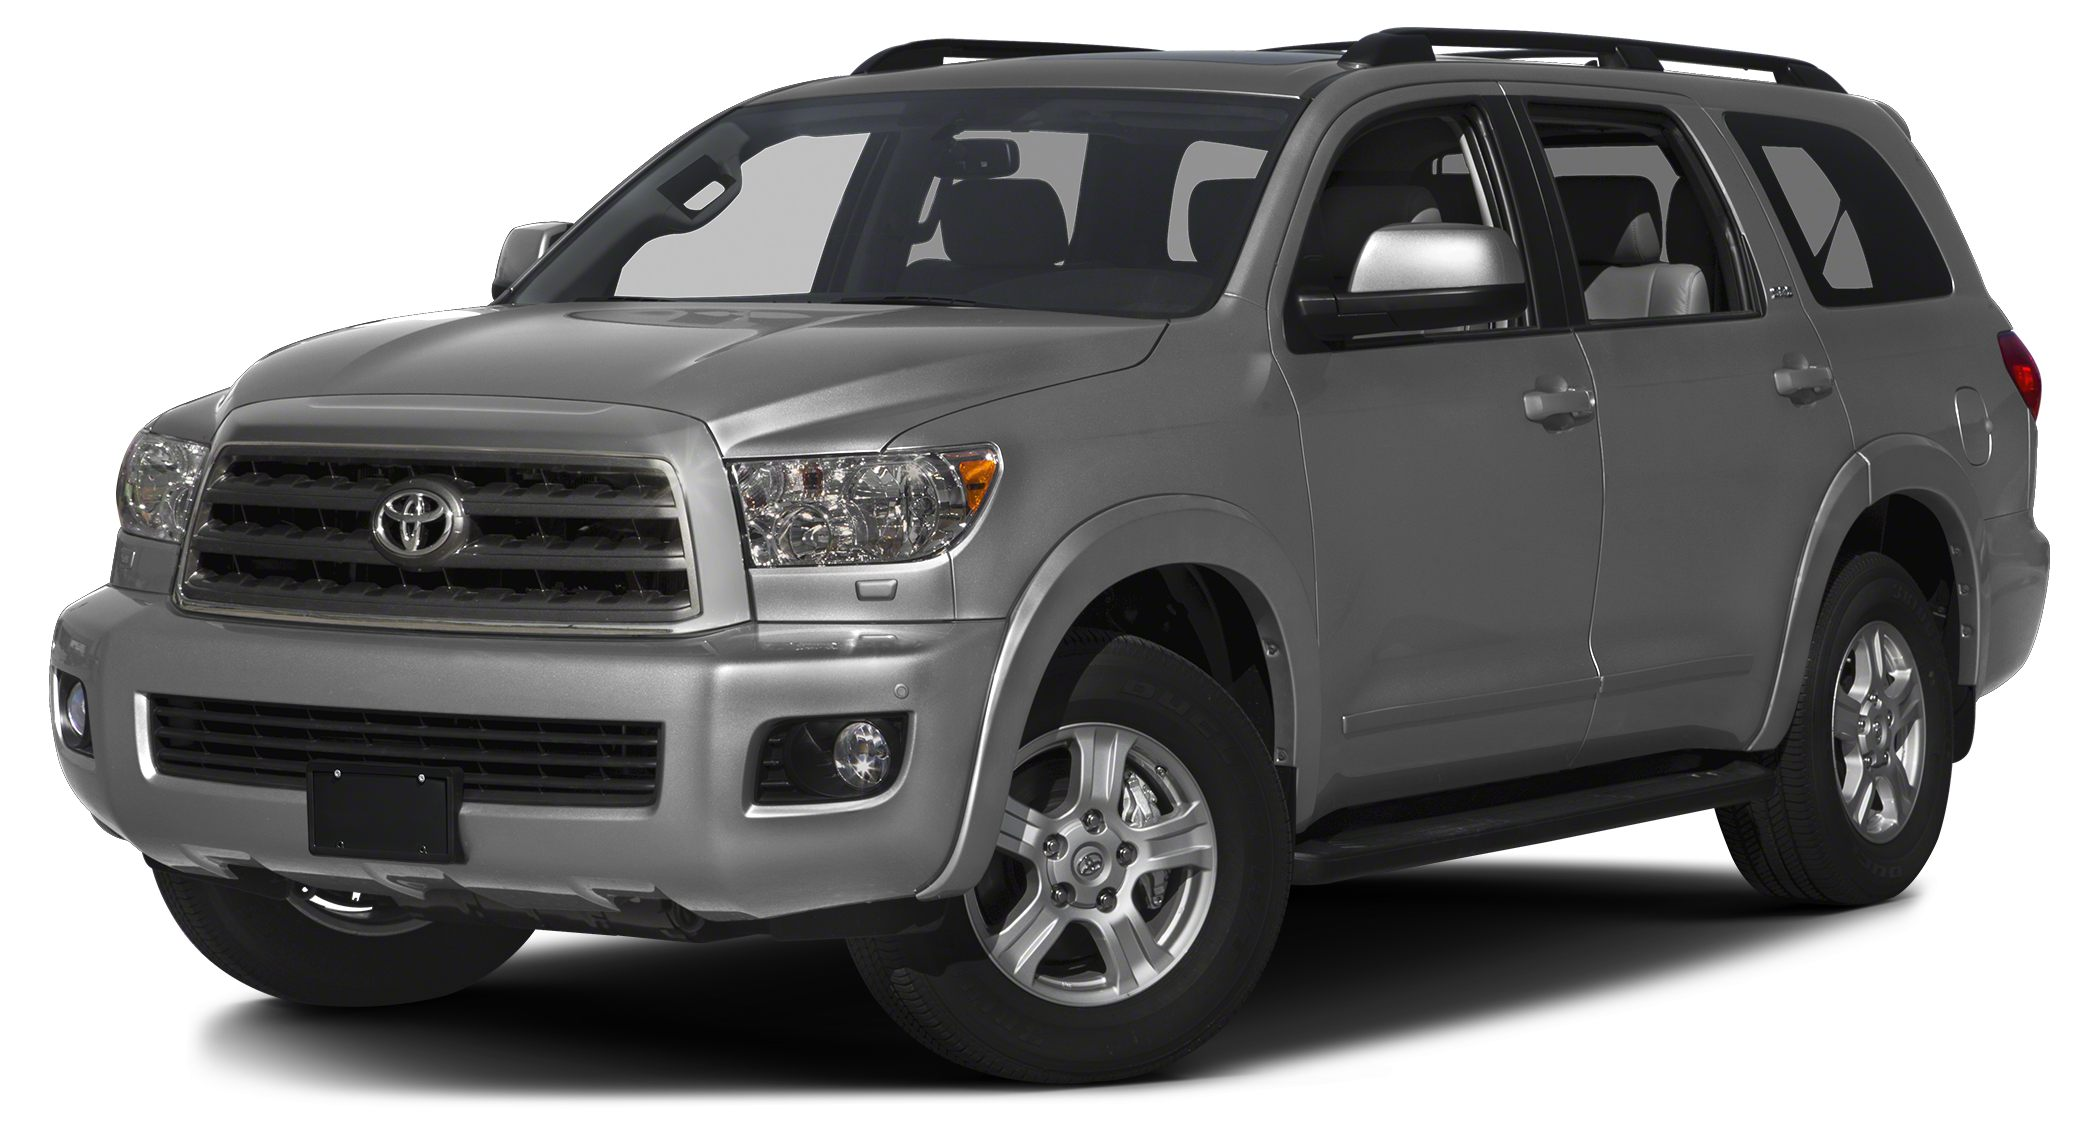 2016 Toyota Sequoia SR5 Introducing the 2016 Toyota Sequoia Performance ride and head-turning g